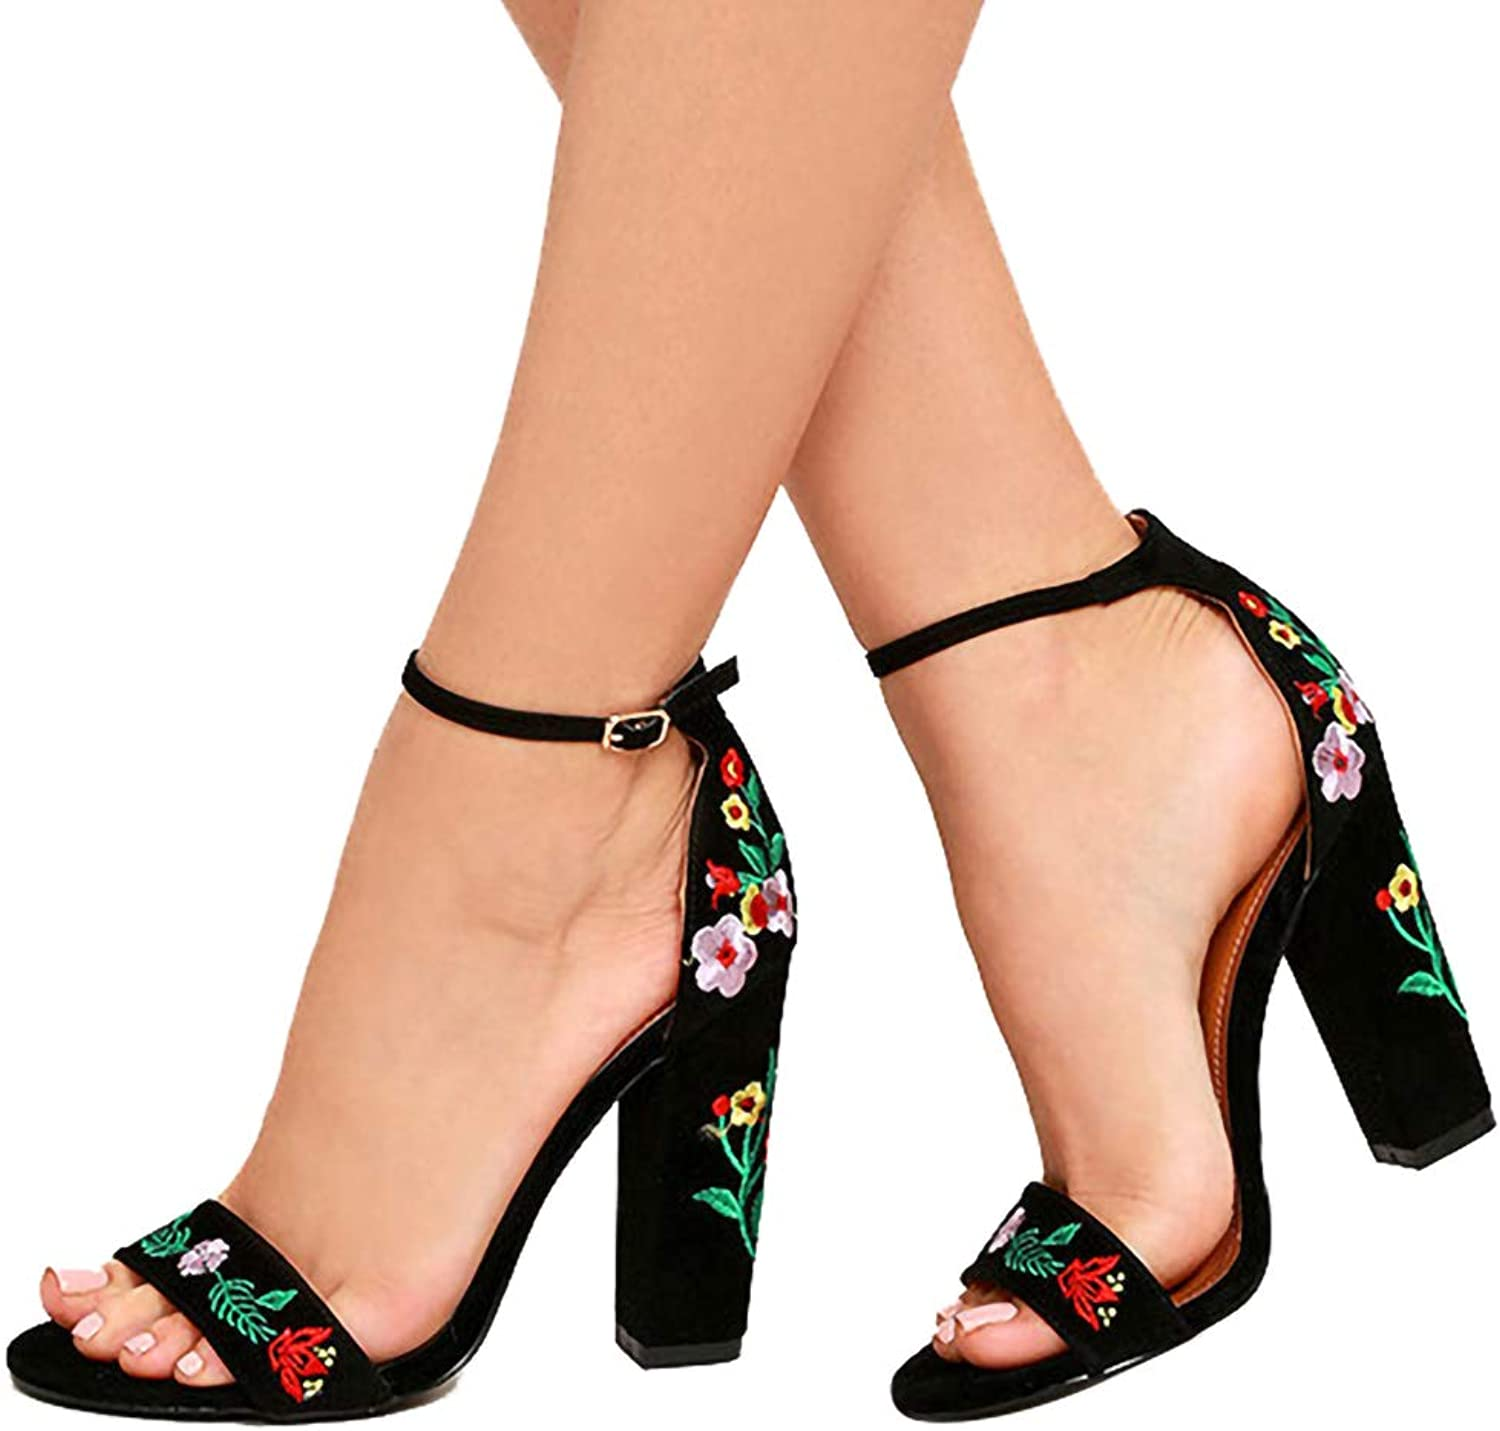 Flowers Embroidered shoes Women Sandals, Sexy Open Toe Gladiator High Heels Women shoes Black Size 35-40,Black,7US